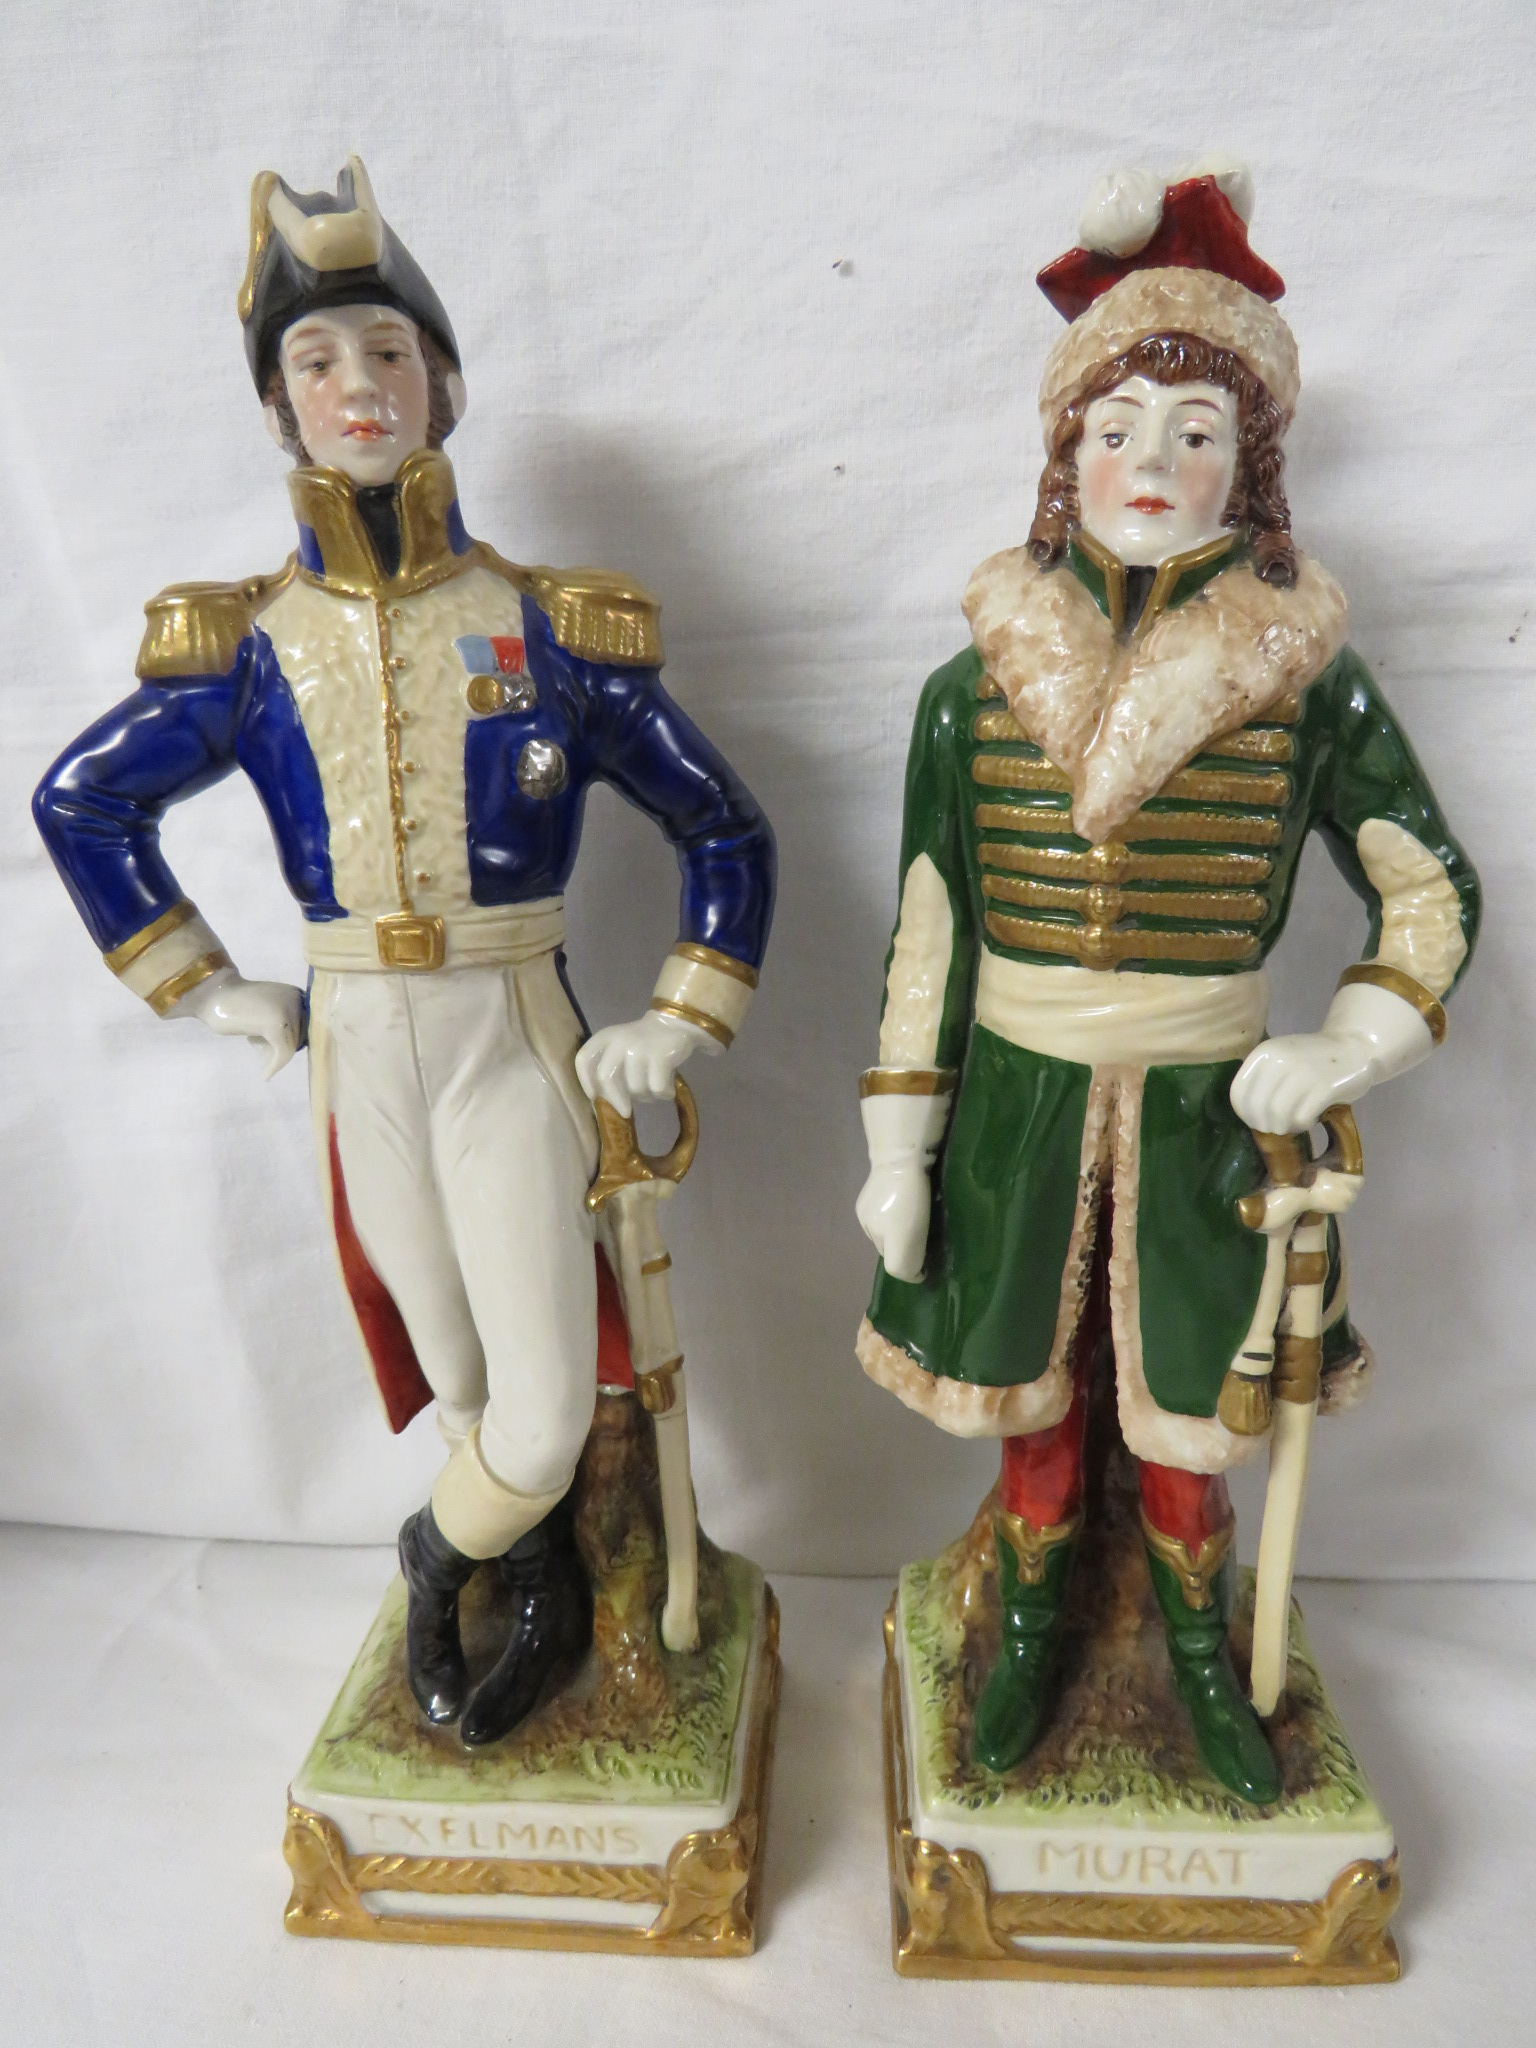 Lot 45 - Six porcelain figures of Napoleonic officers - La Fayette, Murat, Lepic, Exelmans, De Beauharnais,